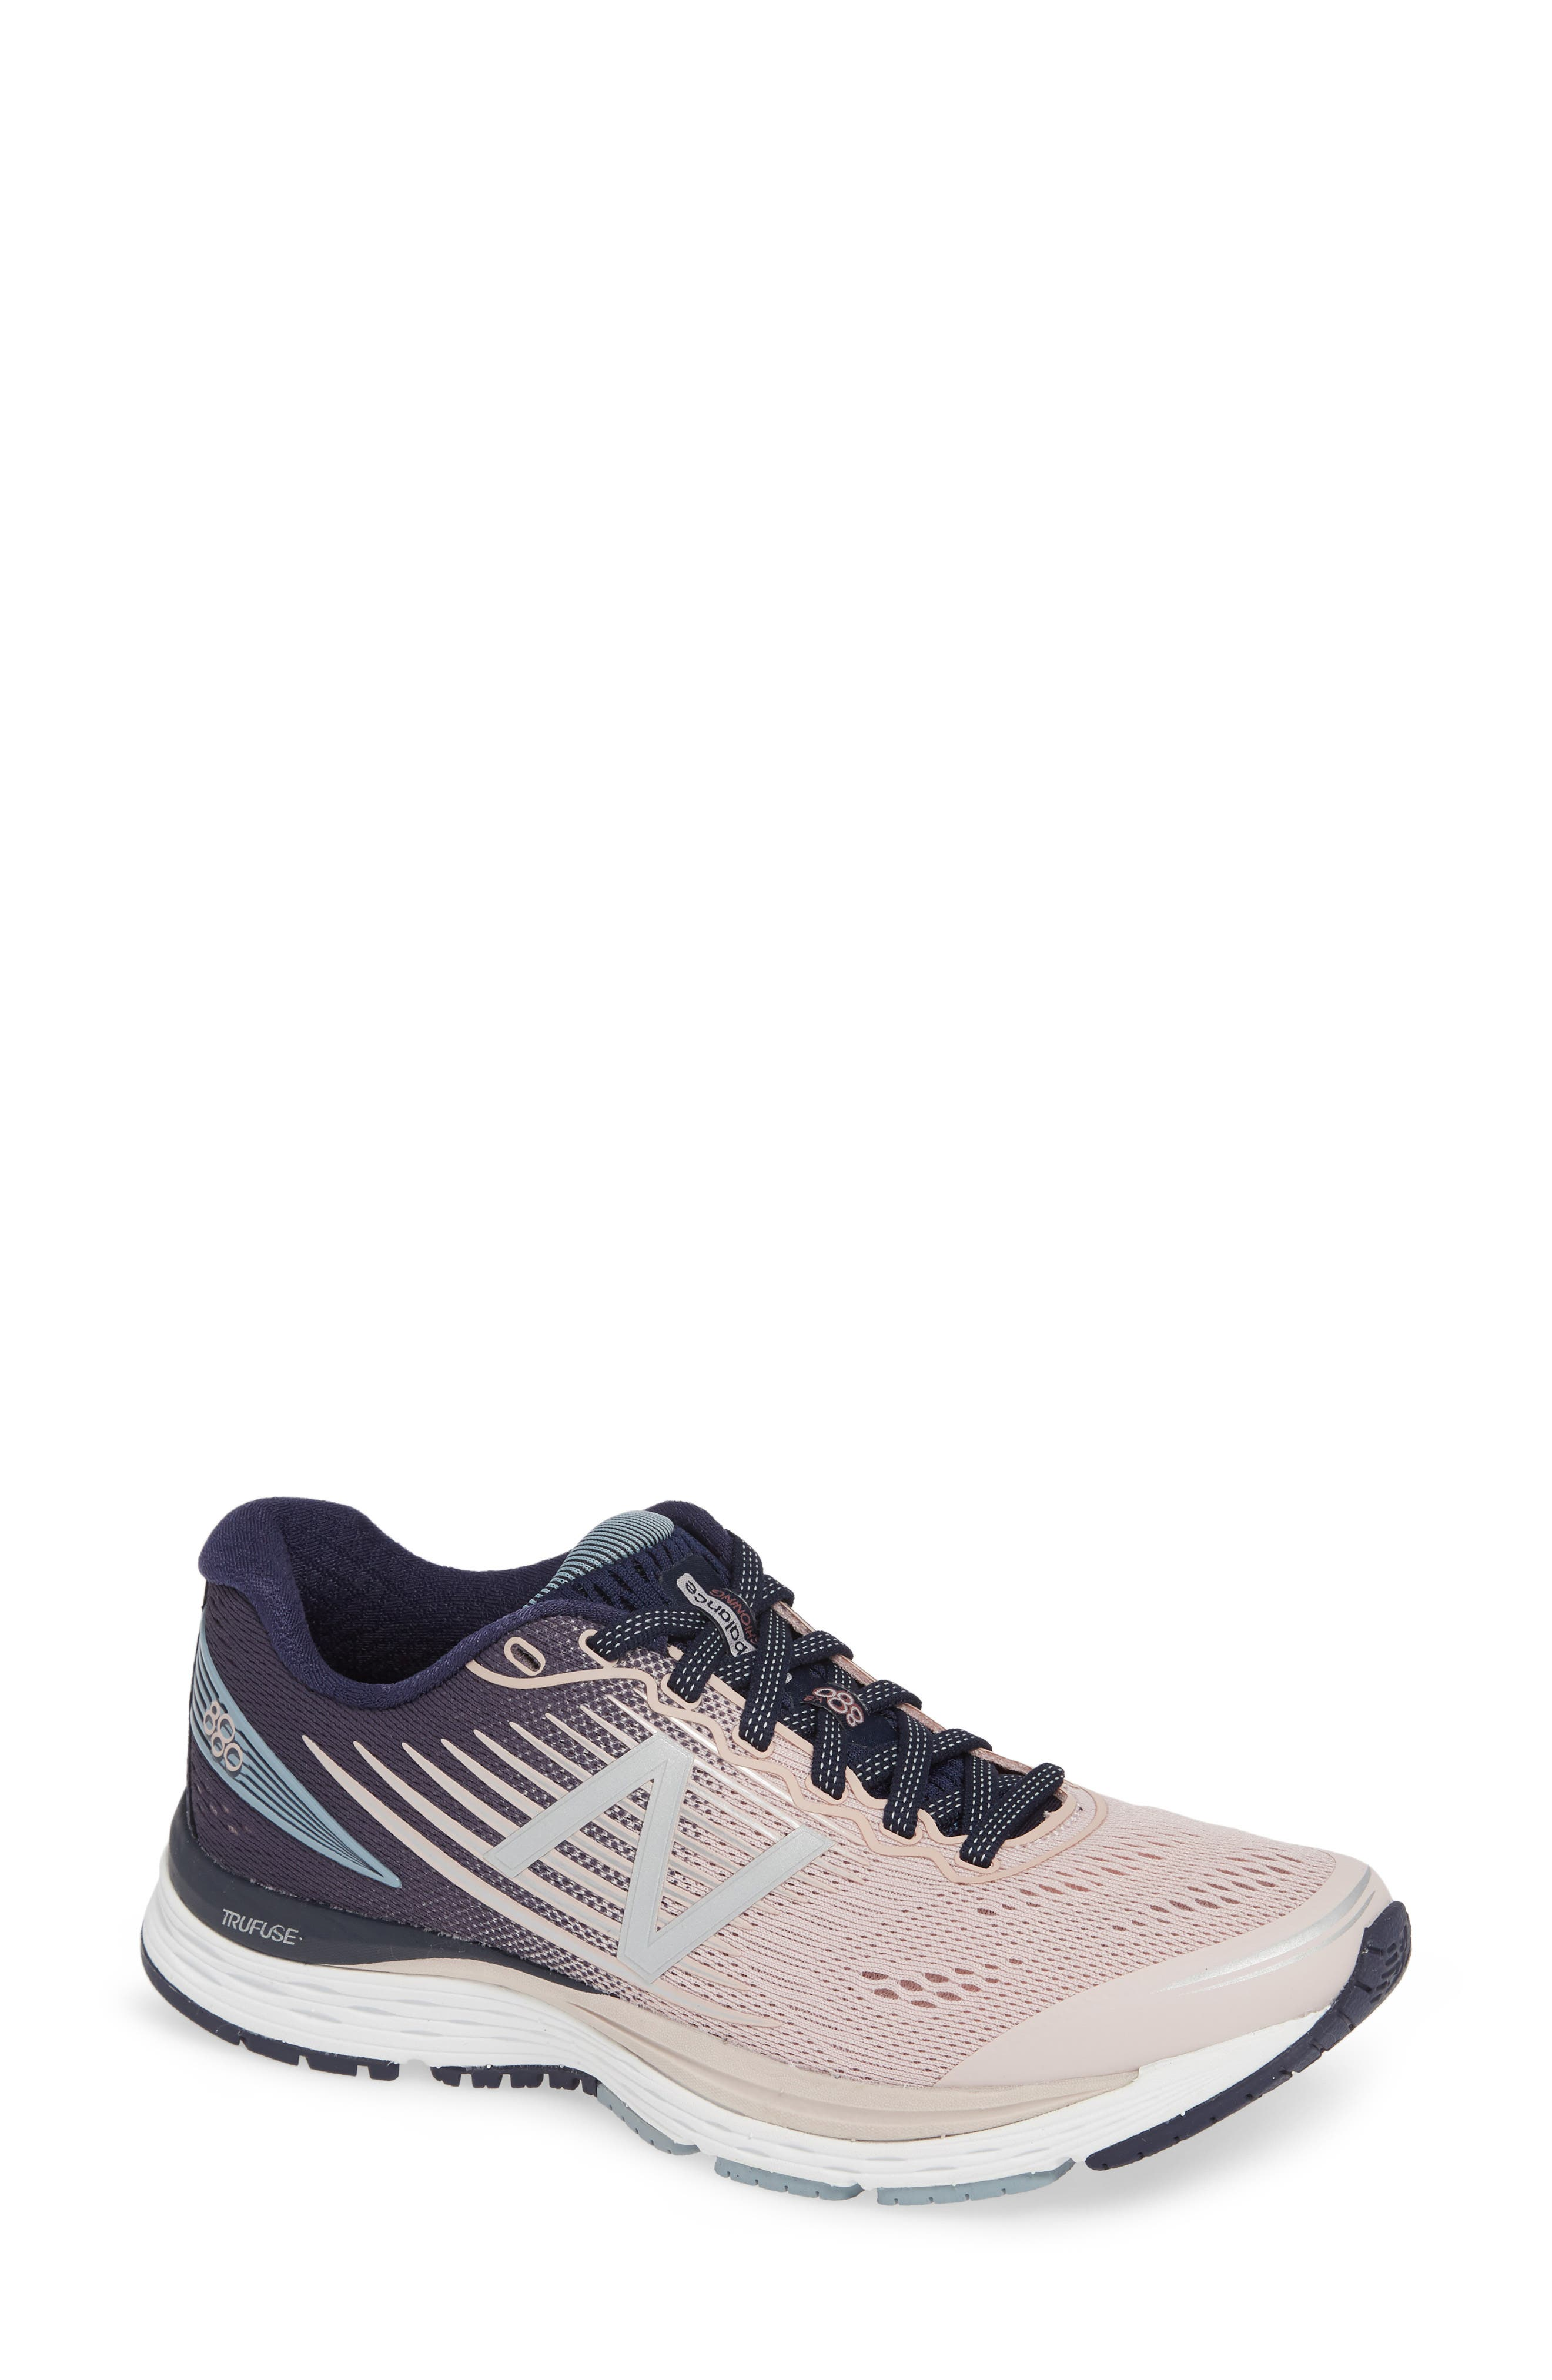 c902c3e0d9e Women s New Balance Running Shoes